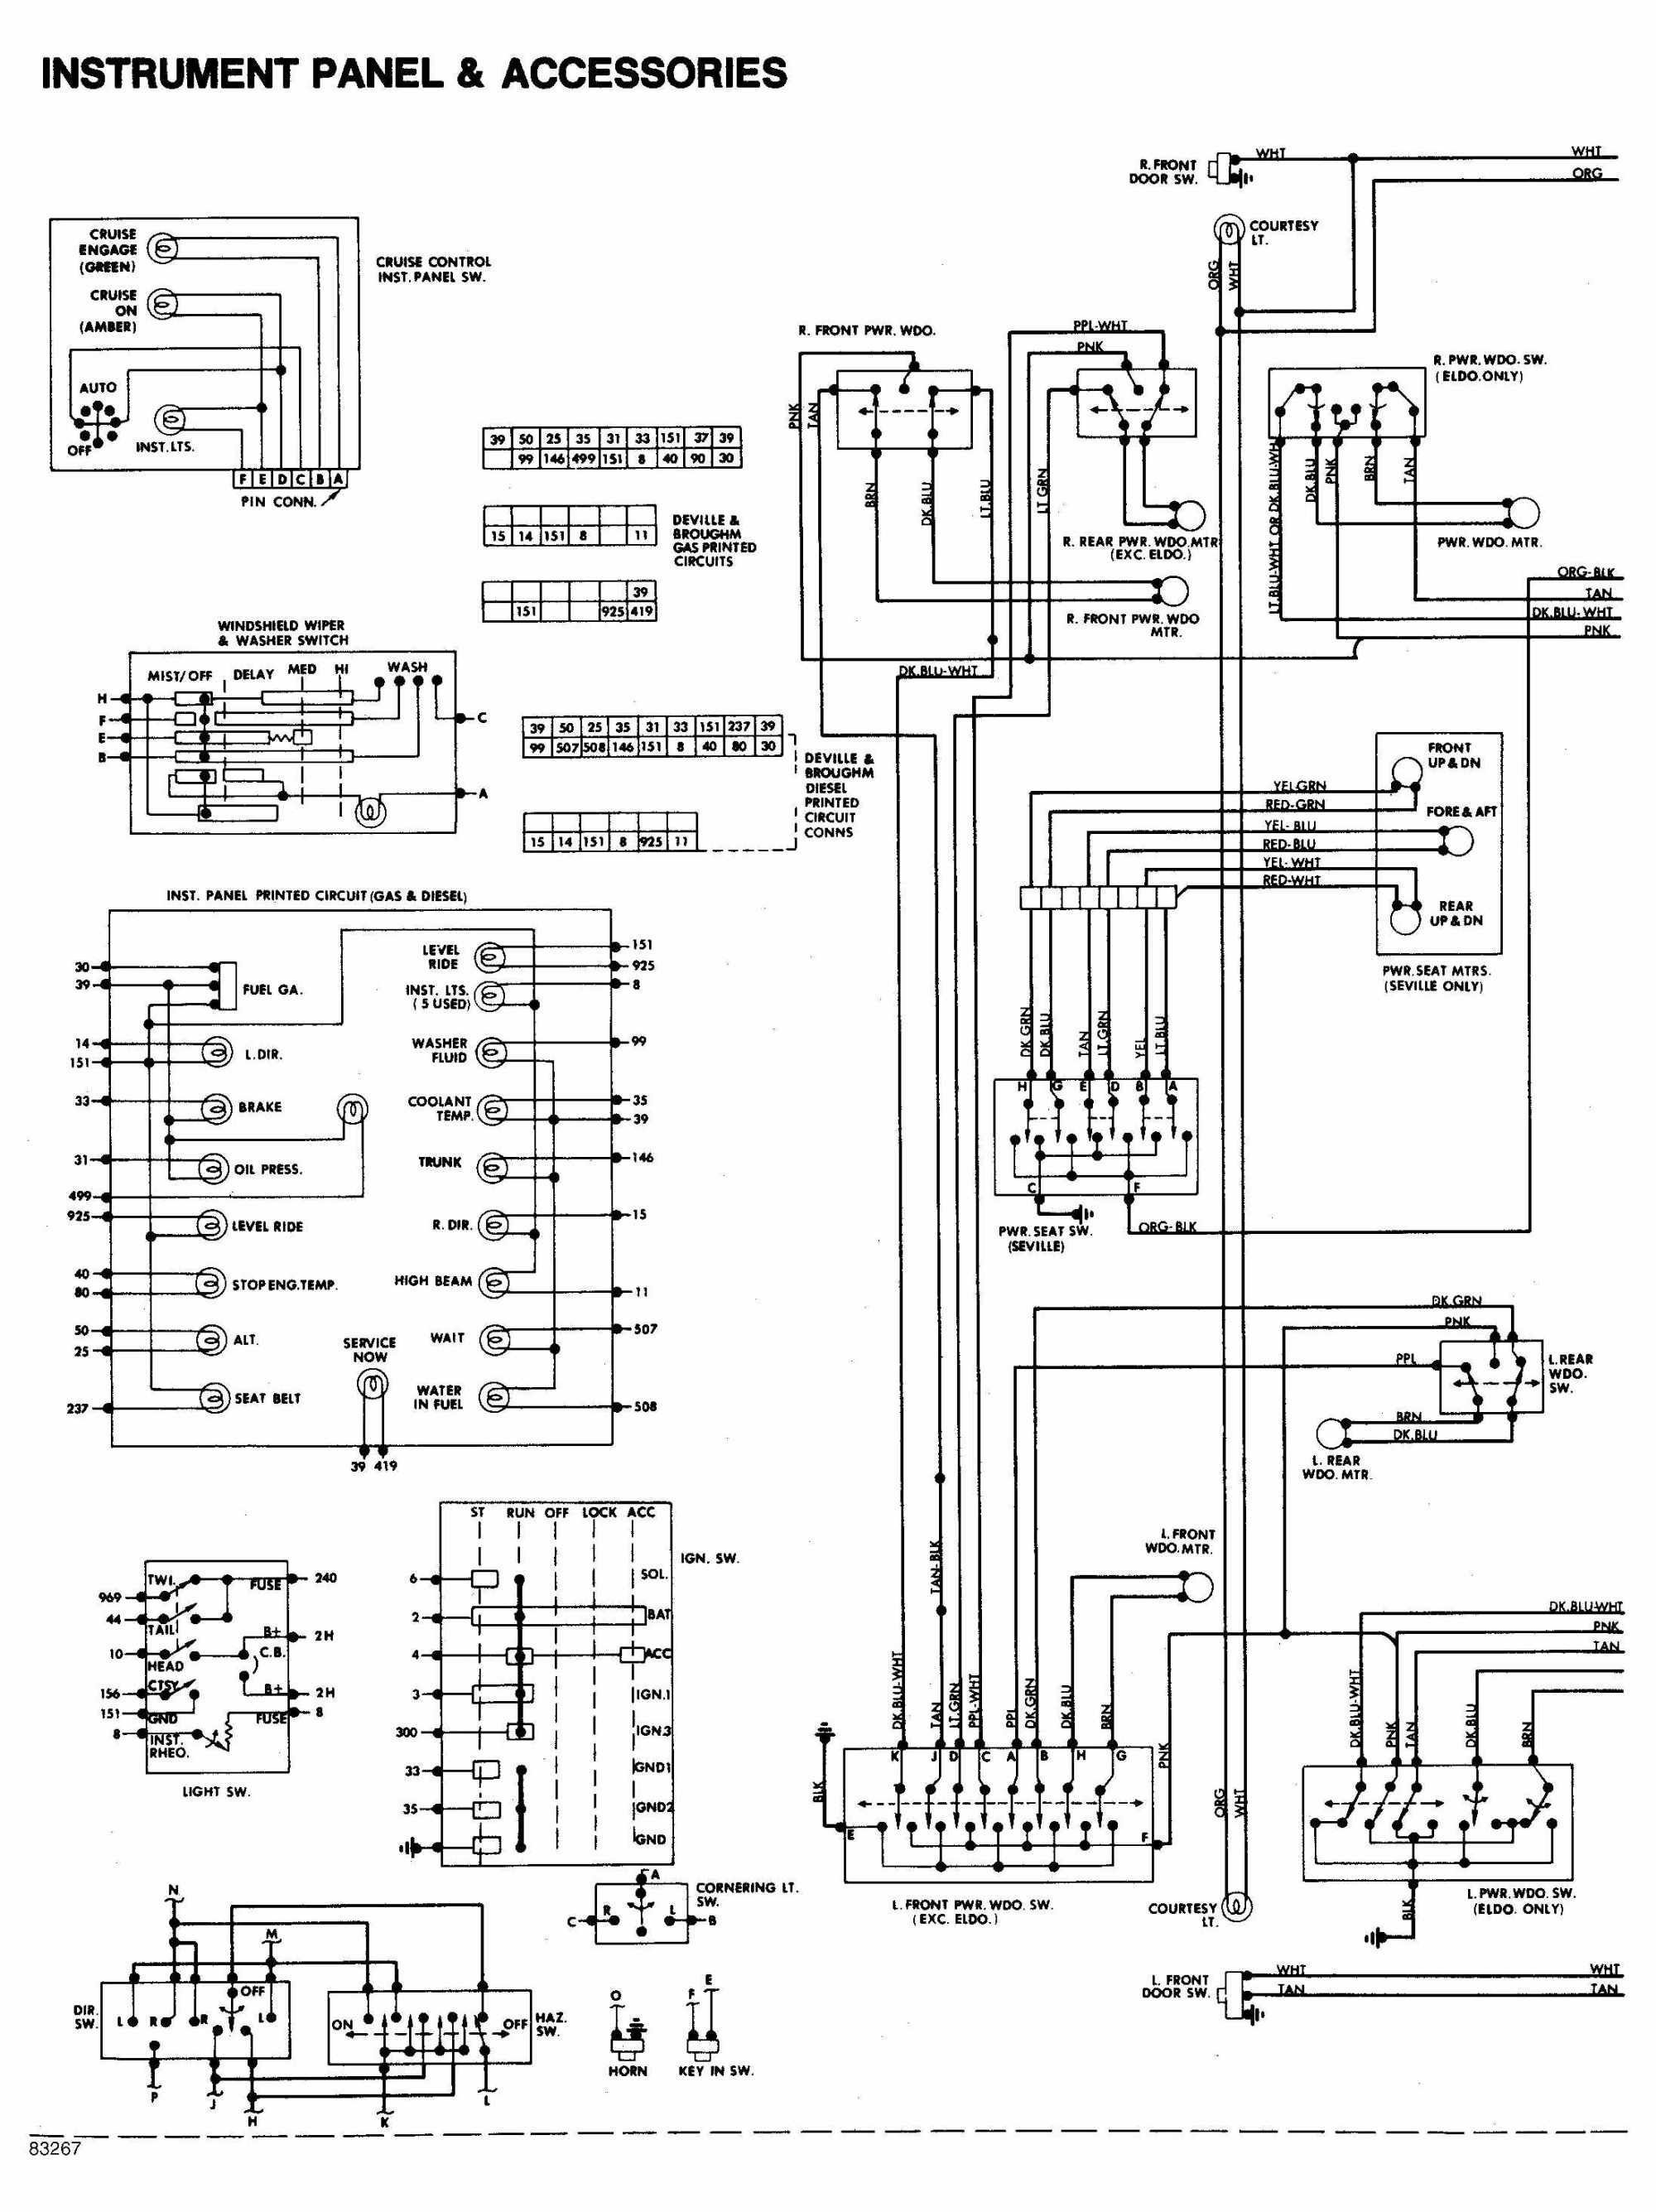 hight resolution of 94 deville wiring diagram wiring library rh 14 csu lichtenhof de 1993 cadillac deville wiring diagram 2001 cadillac deville wiring diagram